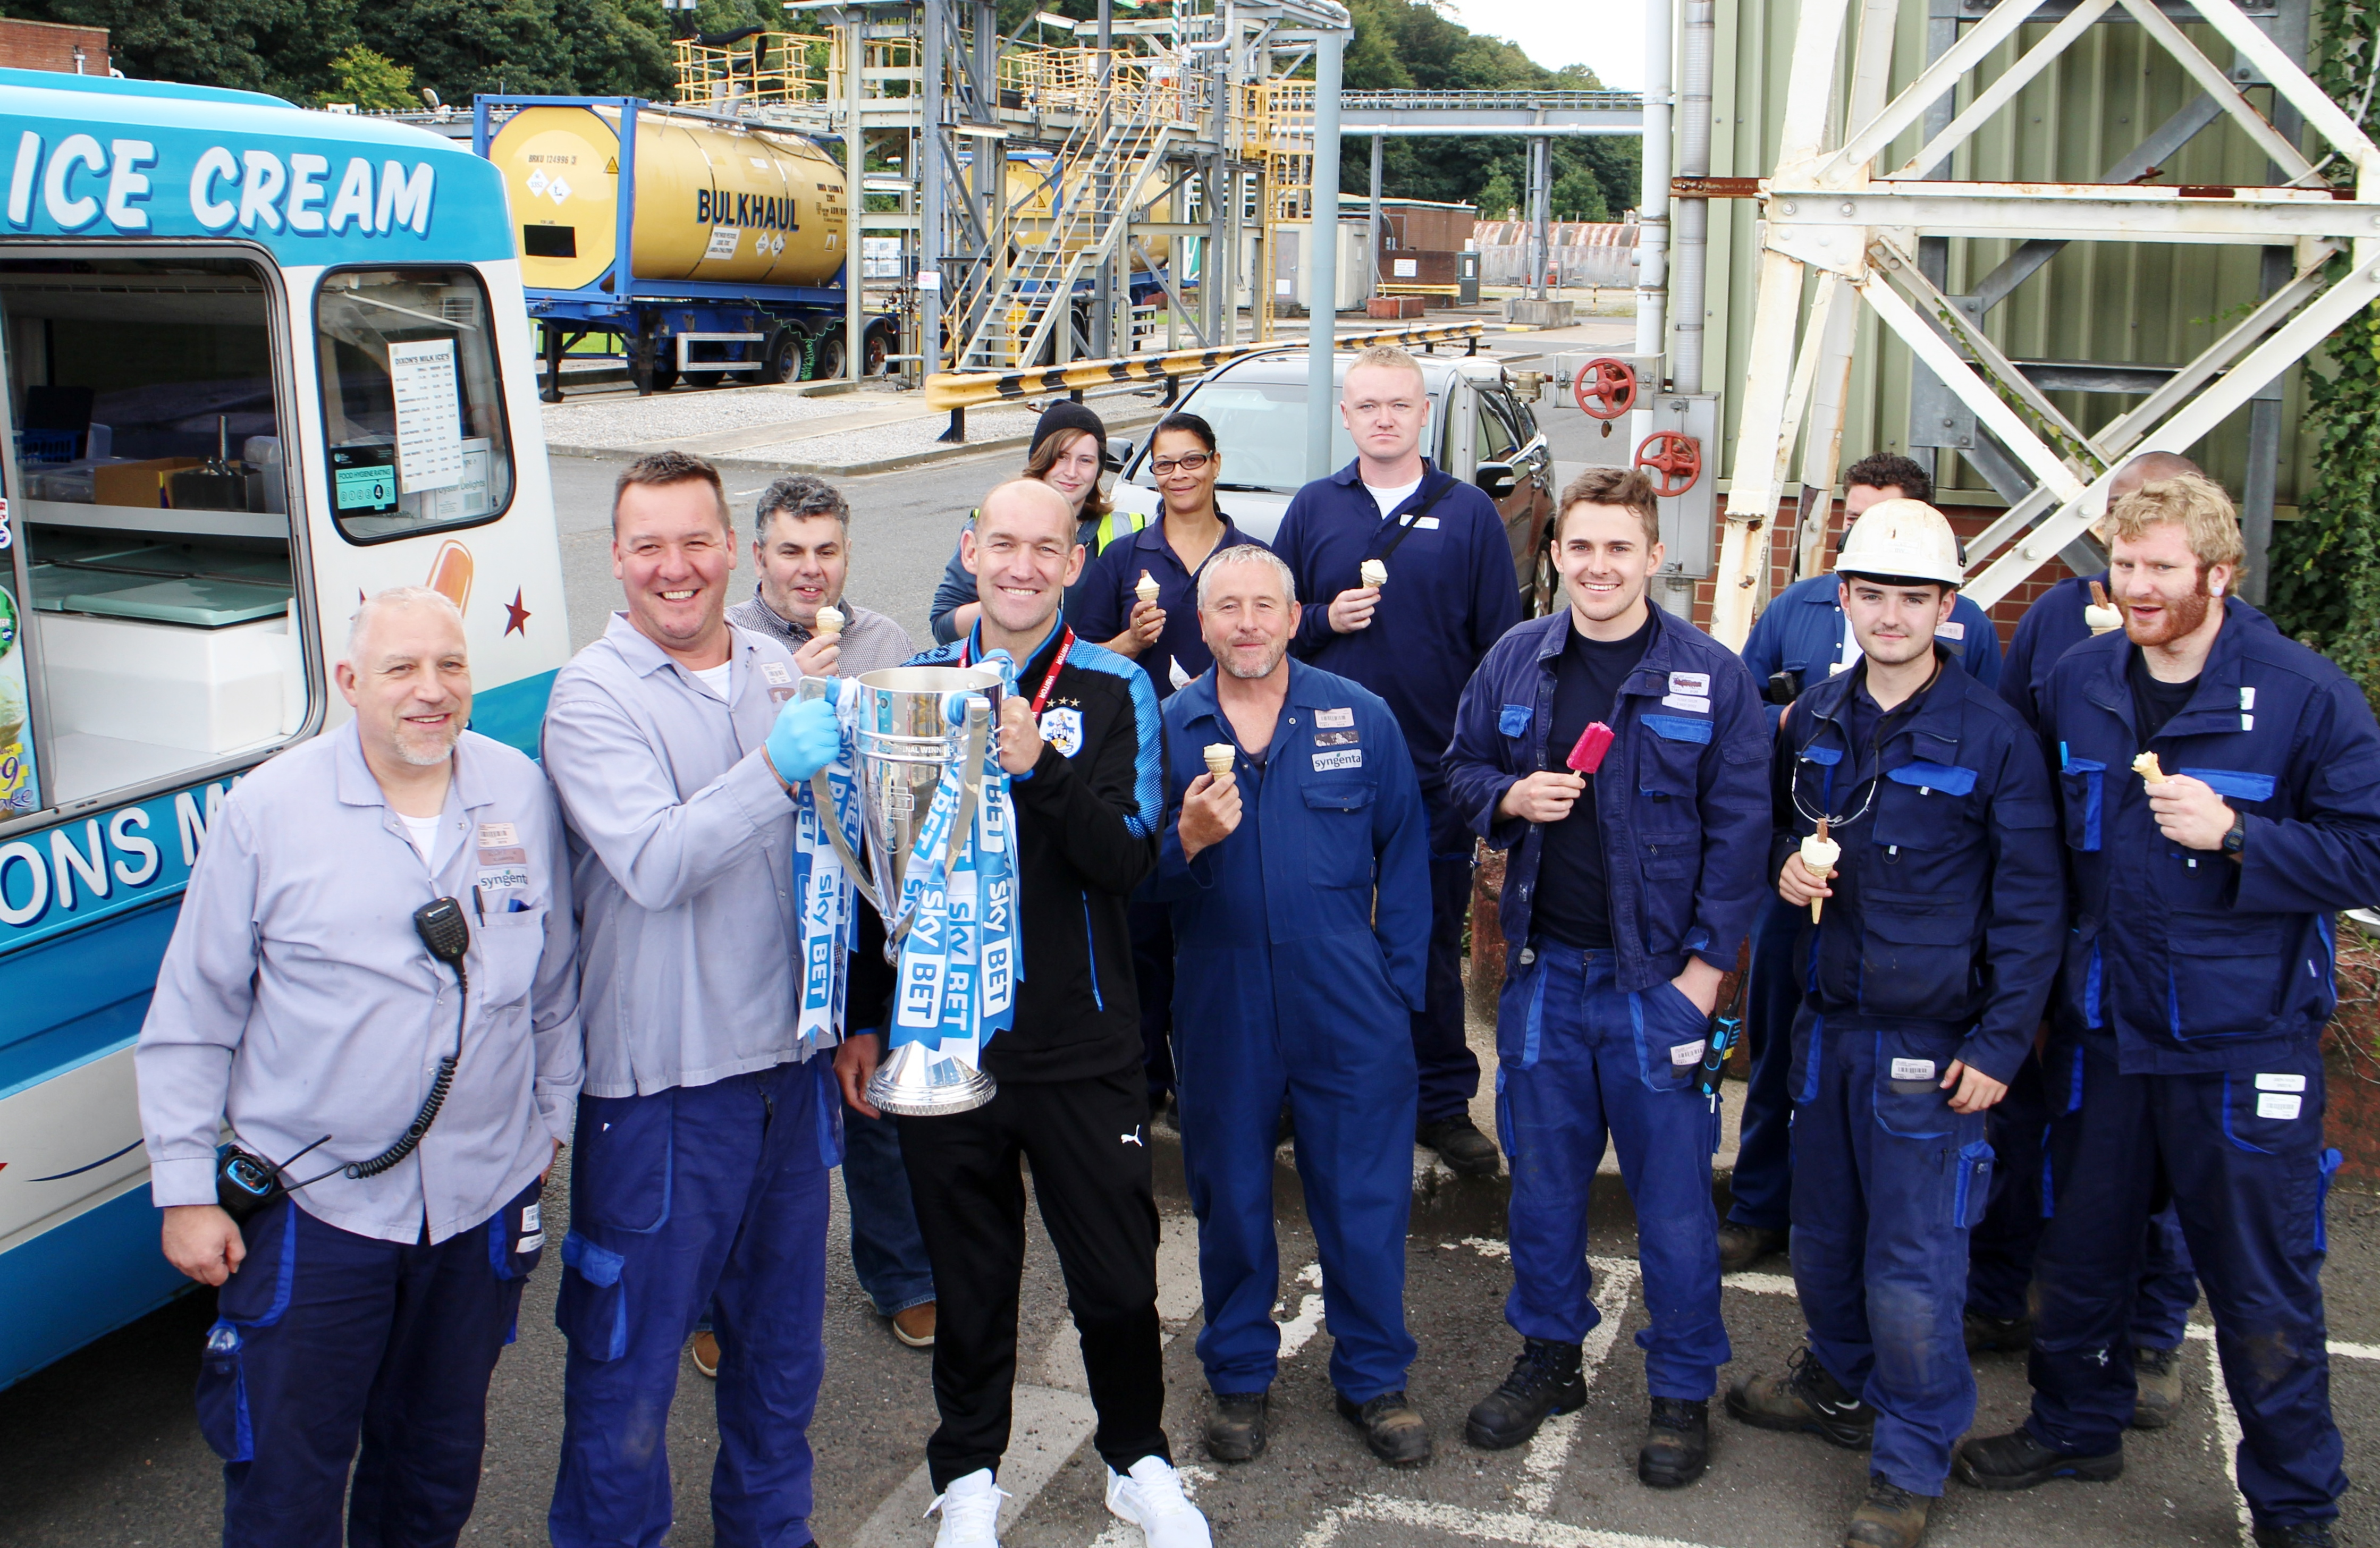 Syngenta staff with Andy Booth and the Trophy